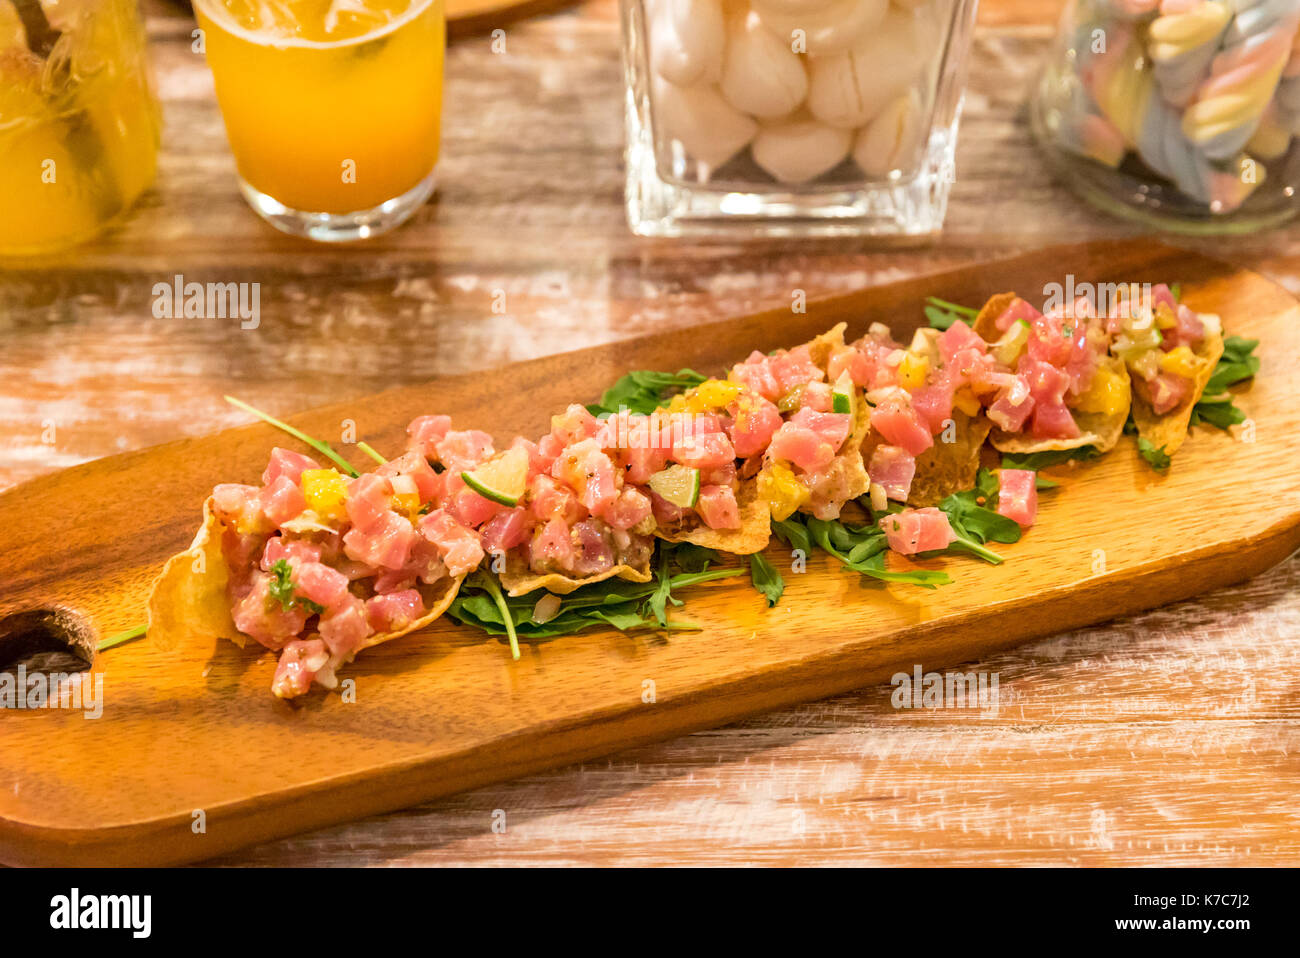 tuna tatare seafood fresh appetizer cuisine served with chip - Stock Image